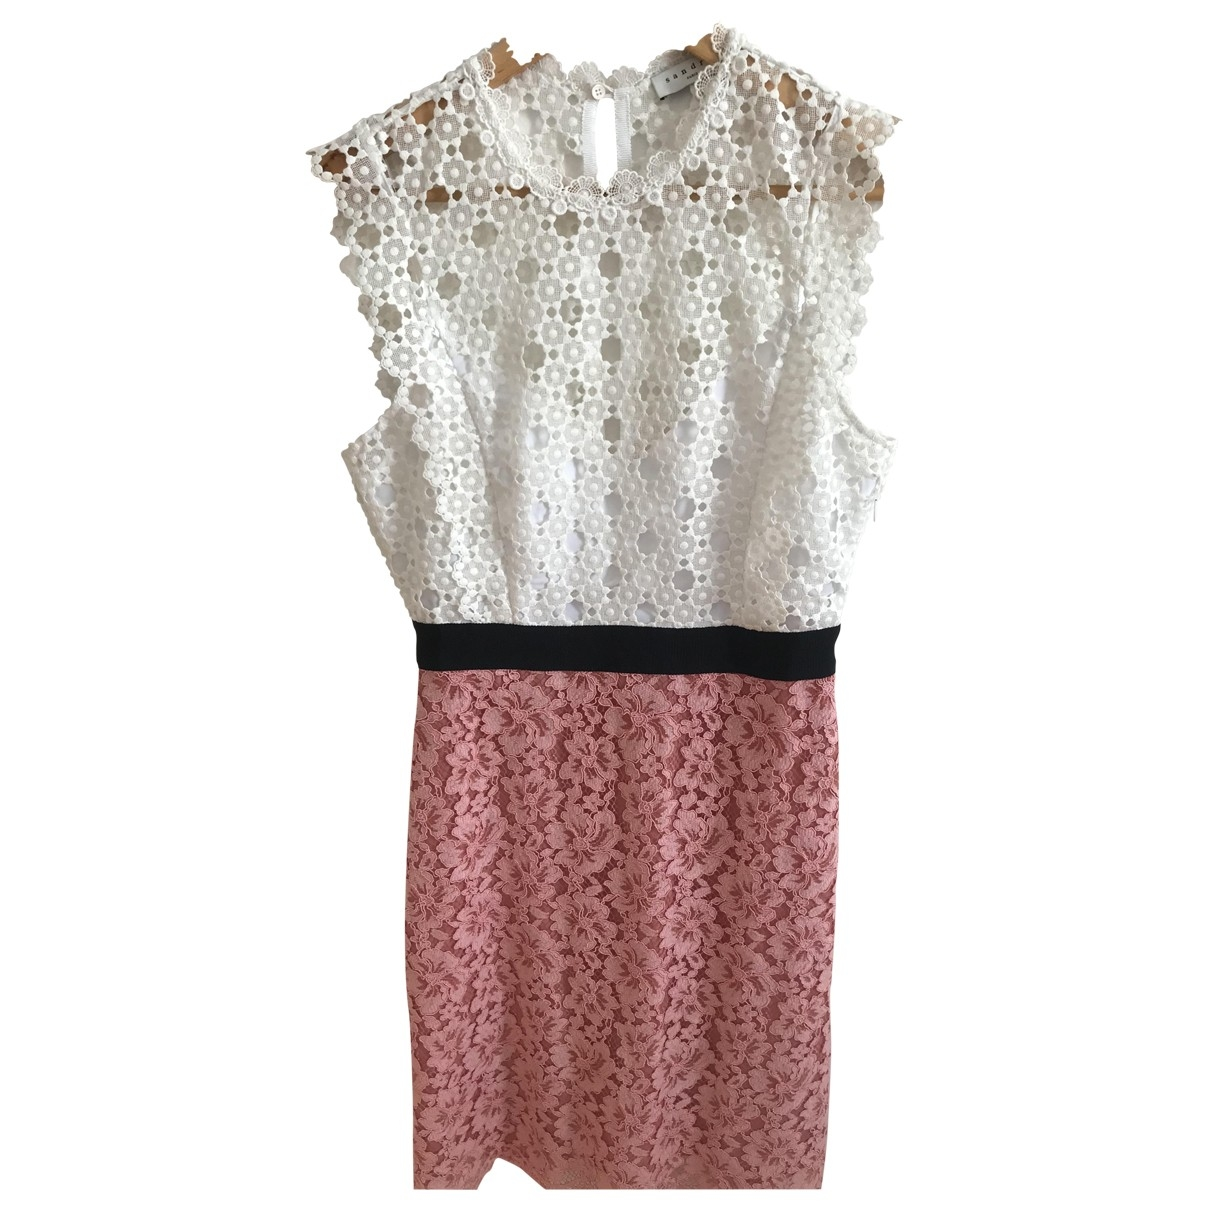 Sandro Spring Summer 2019 Pink Lace dress for Women 38 FR